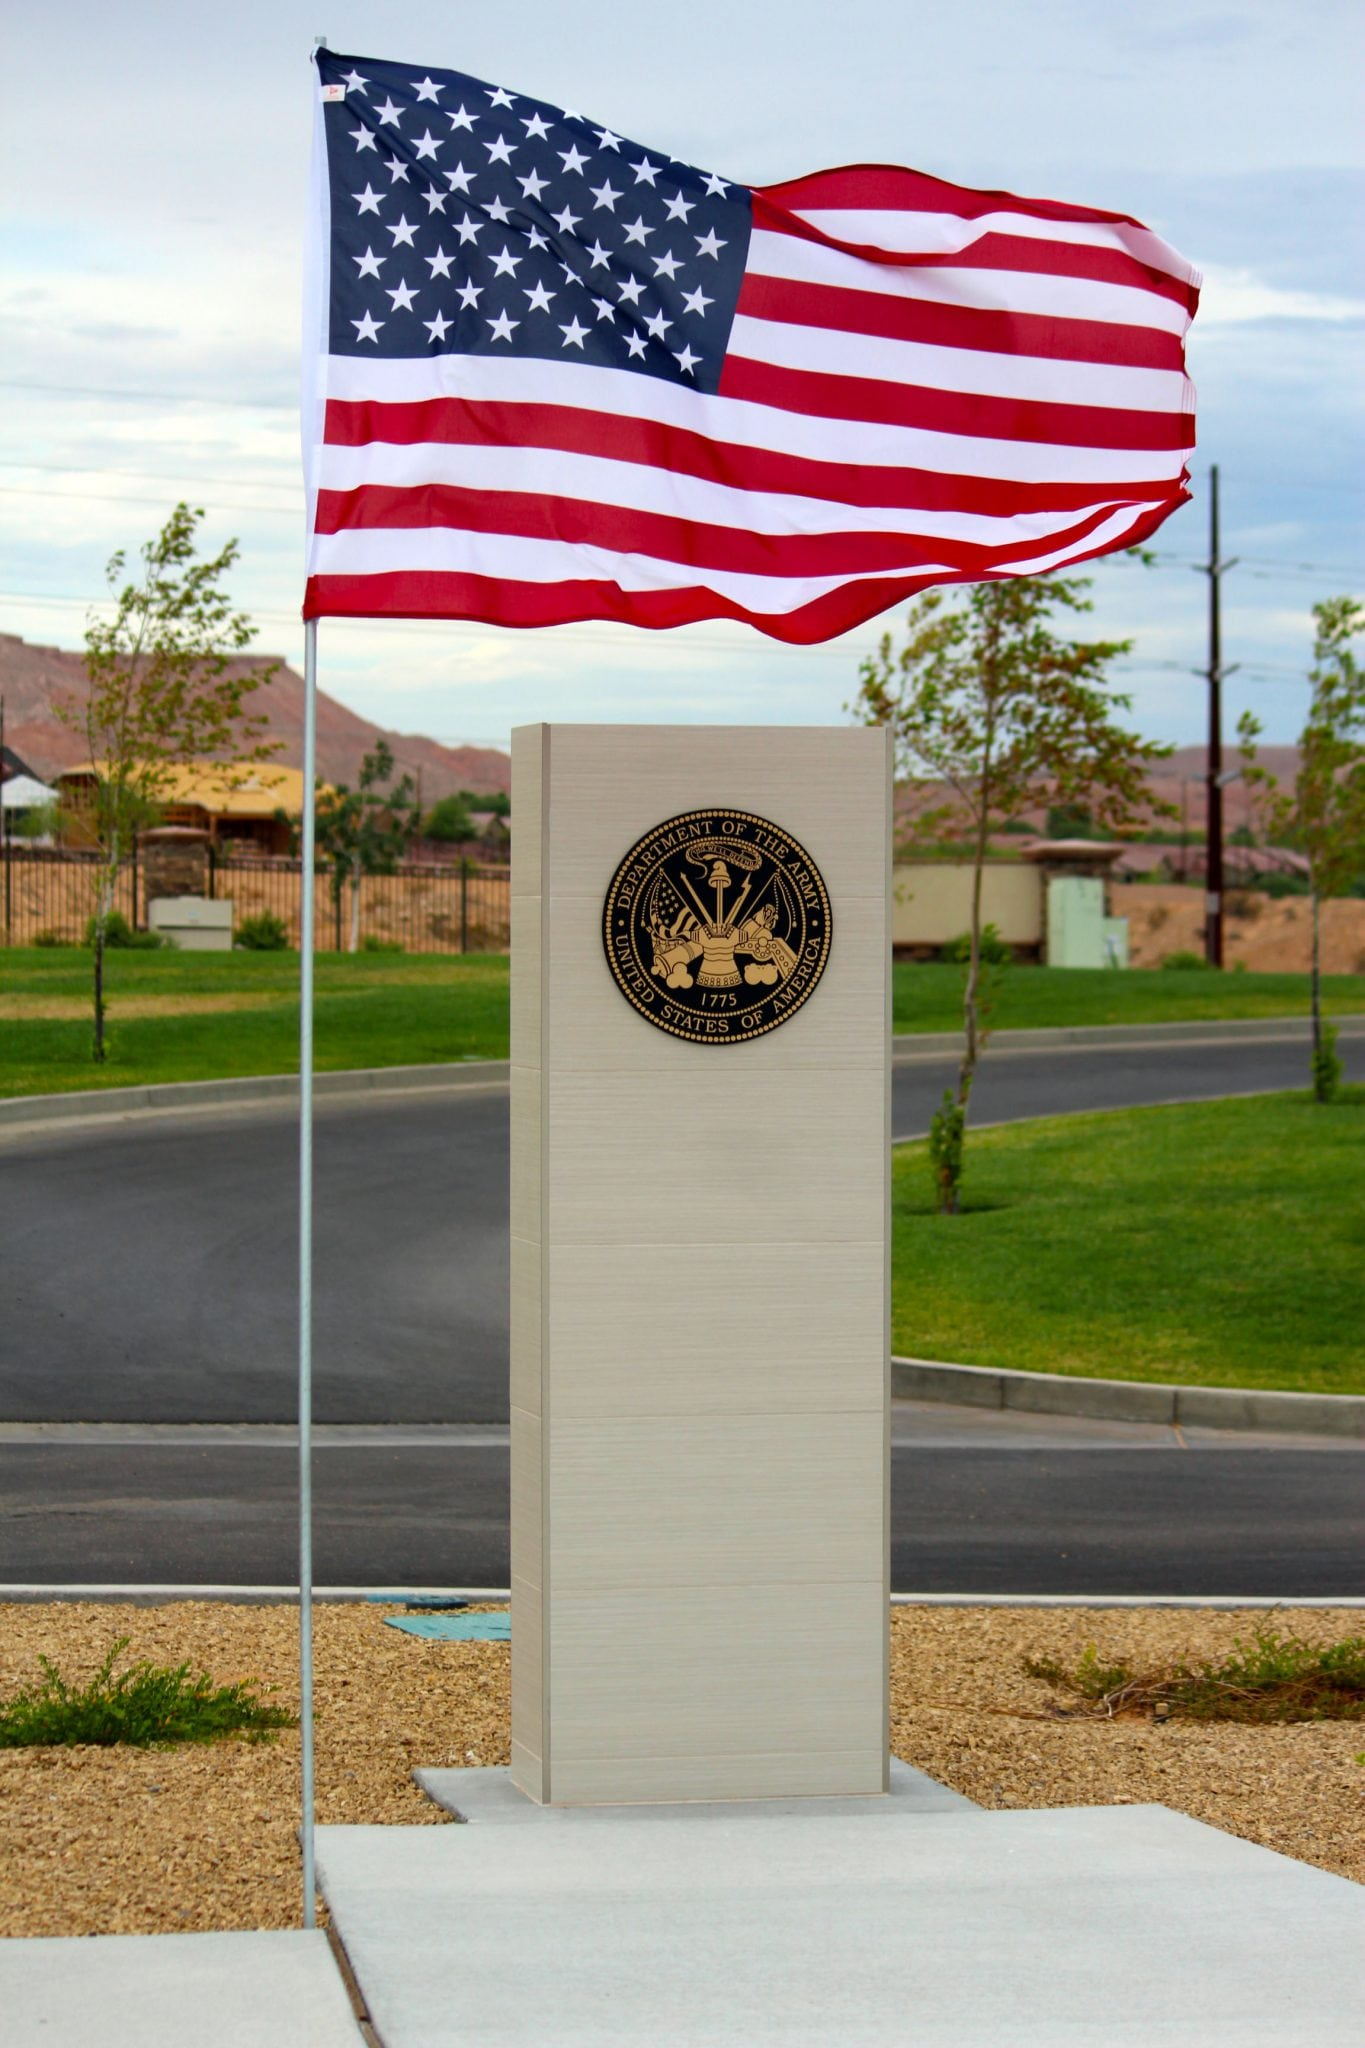 In honor of their service